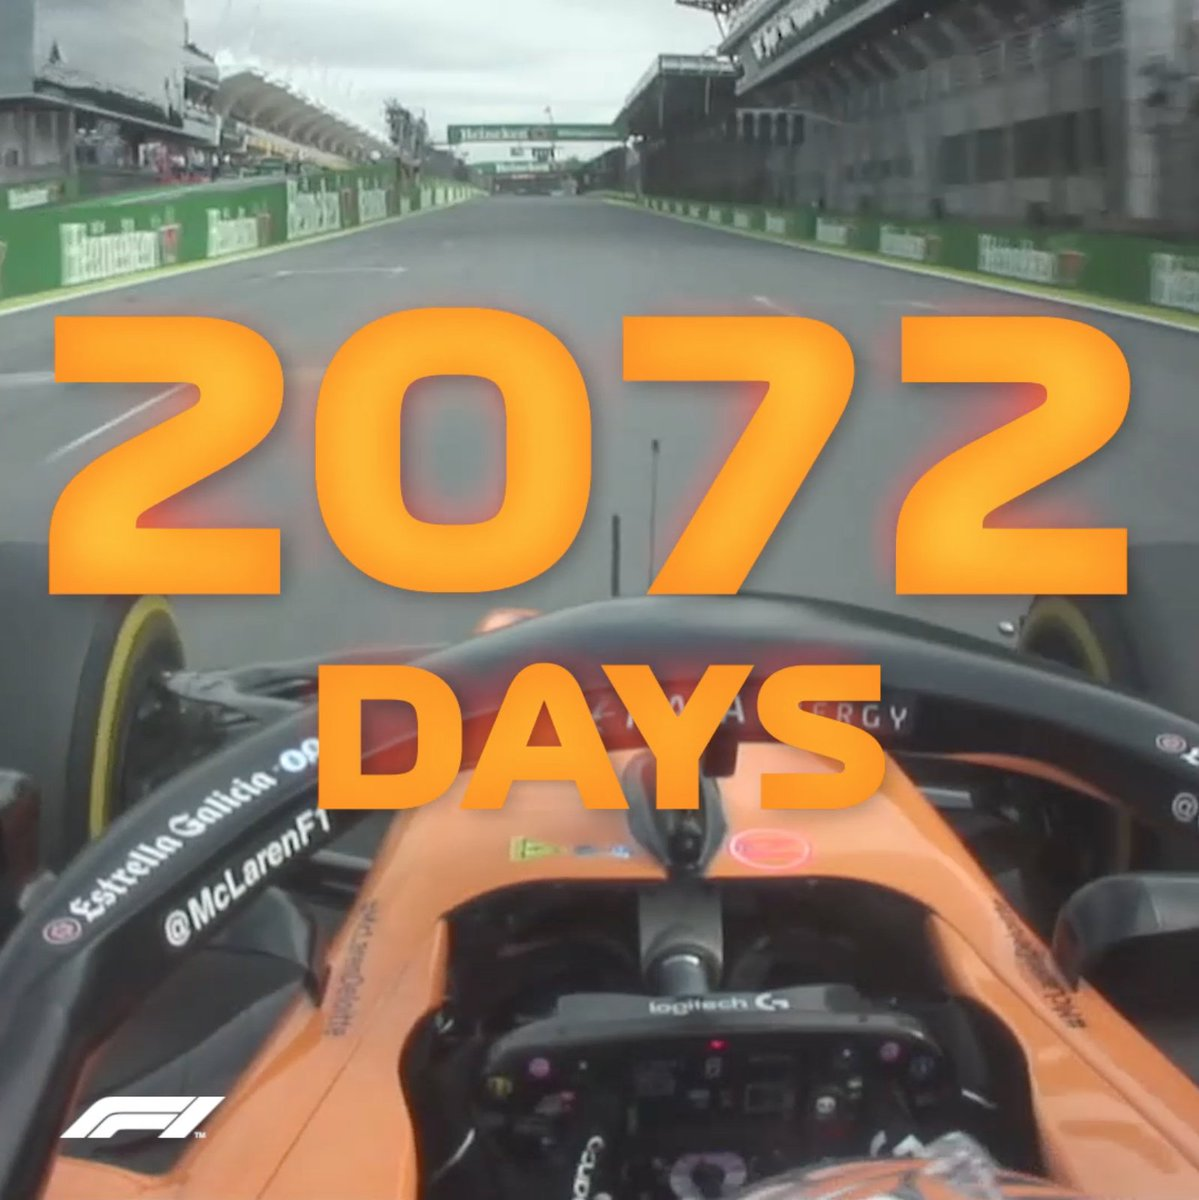 It's been a while...    @McLarenF1    #BrazilGP   #F1